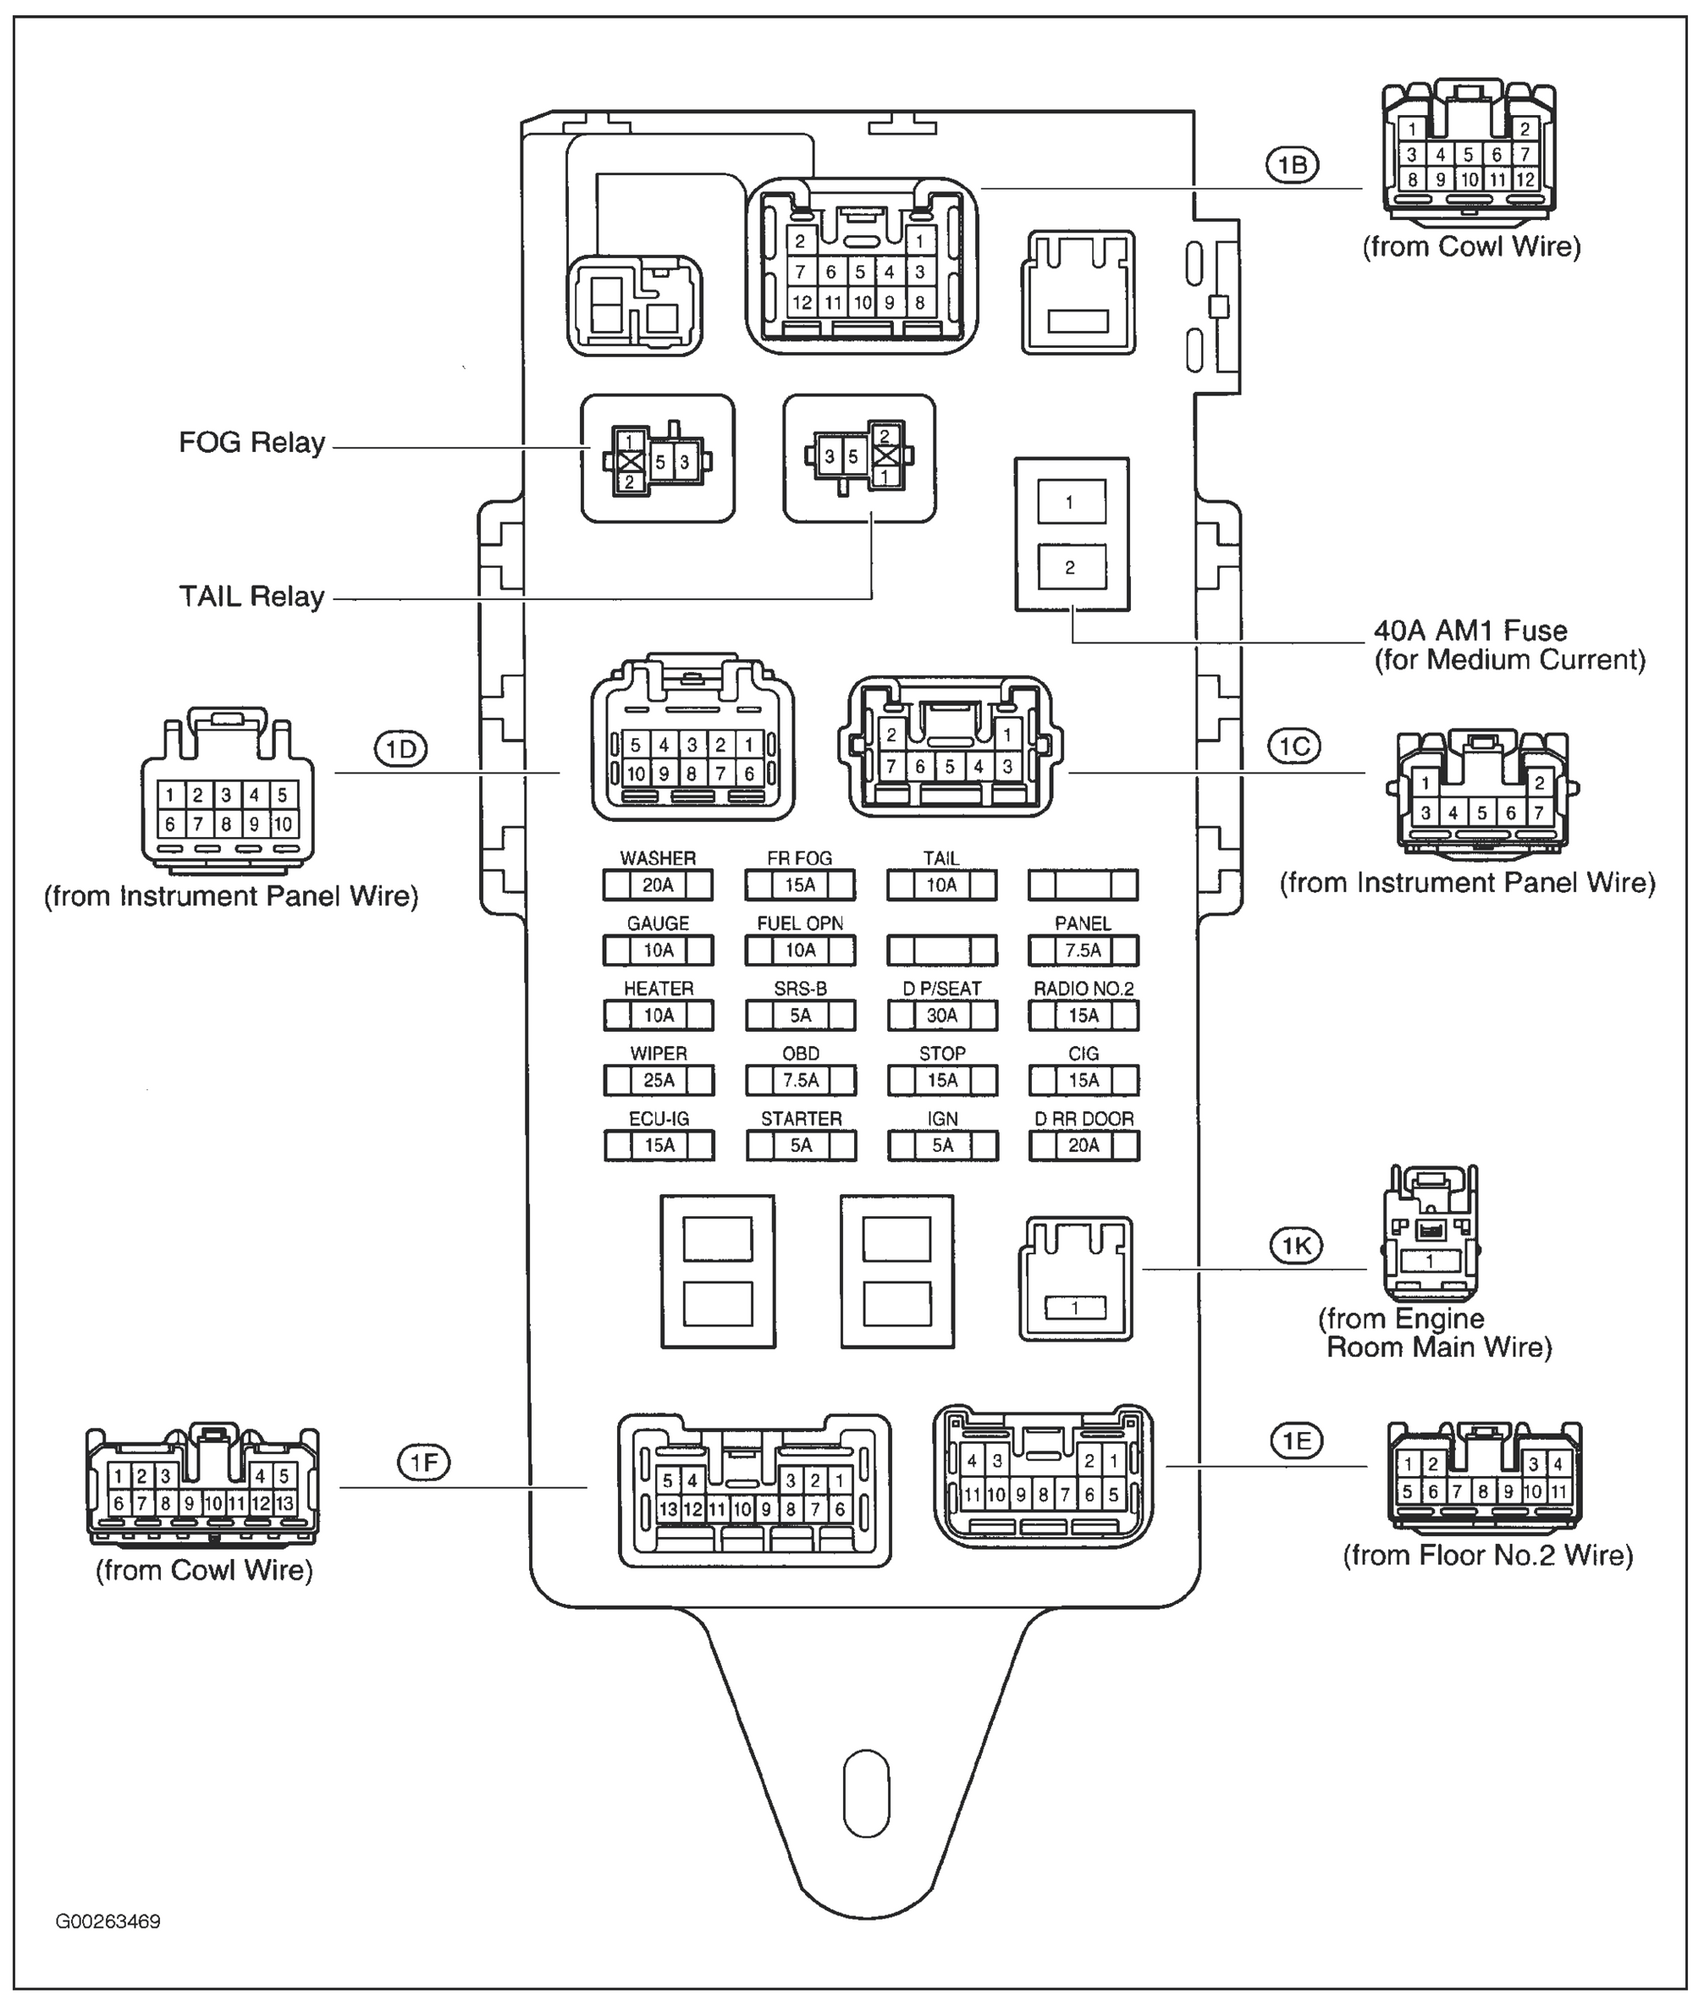 2003 lexus es300 fuse box diagram 2003 image wiring diagram lexus gs430 wiring auto wiring diagram schematic on 2003 lexus es300 fuse box diagram